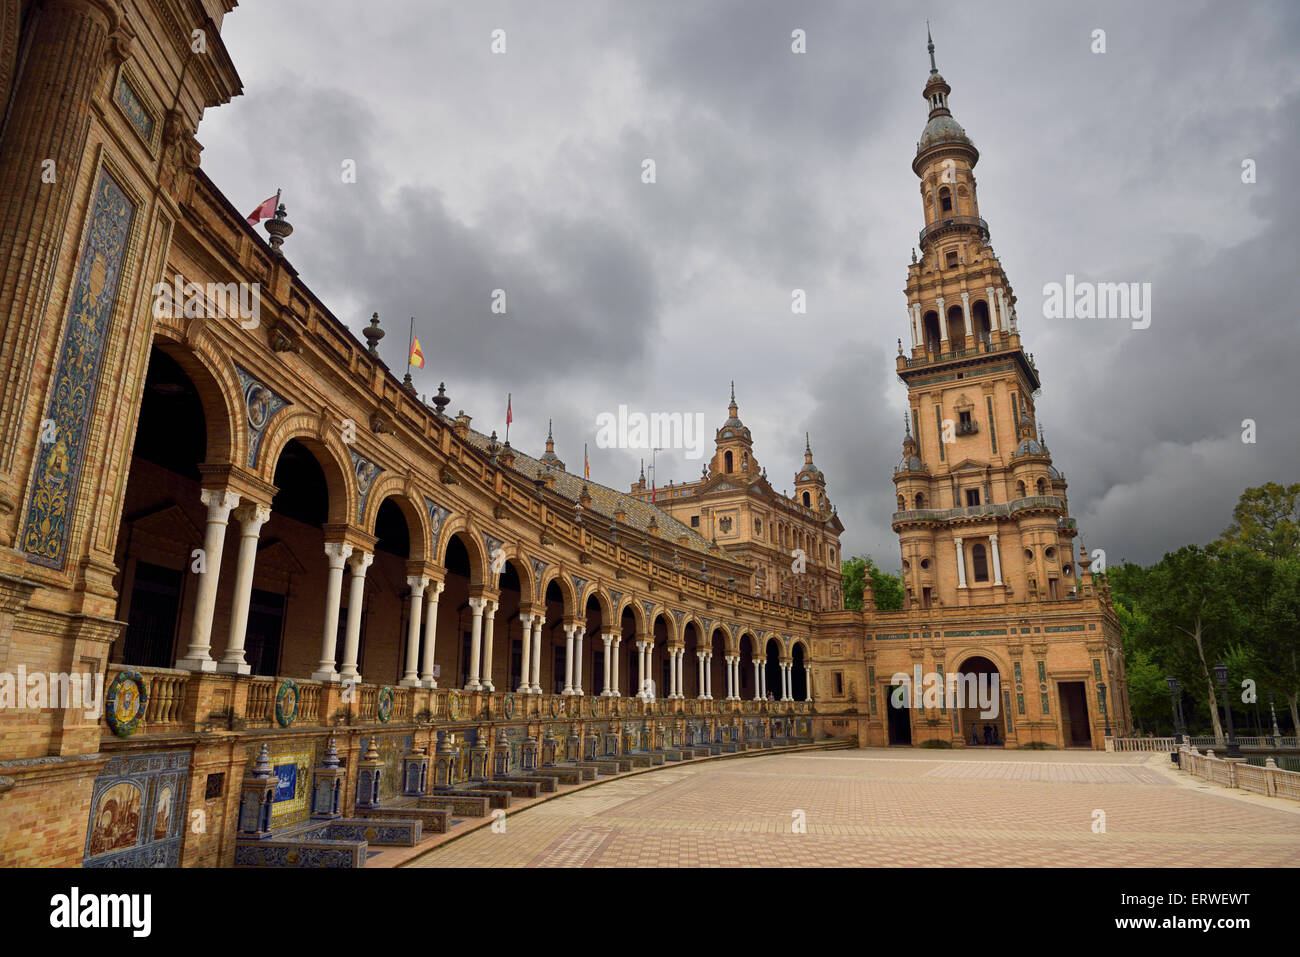 South Tower with curved row of alcoves of Spanish Provinces at Plaza de Espana Seville - Stock Image